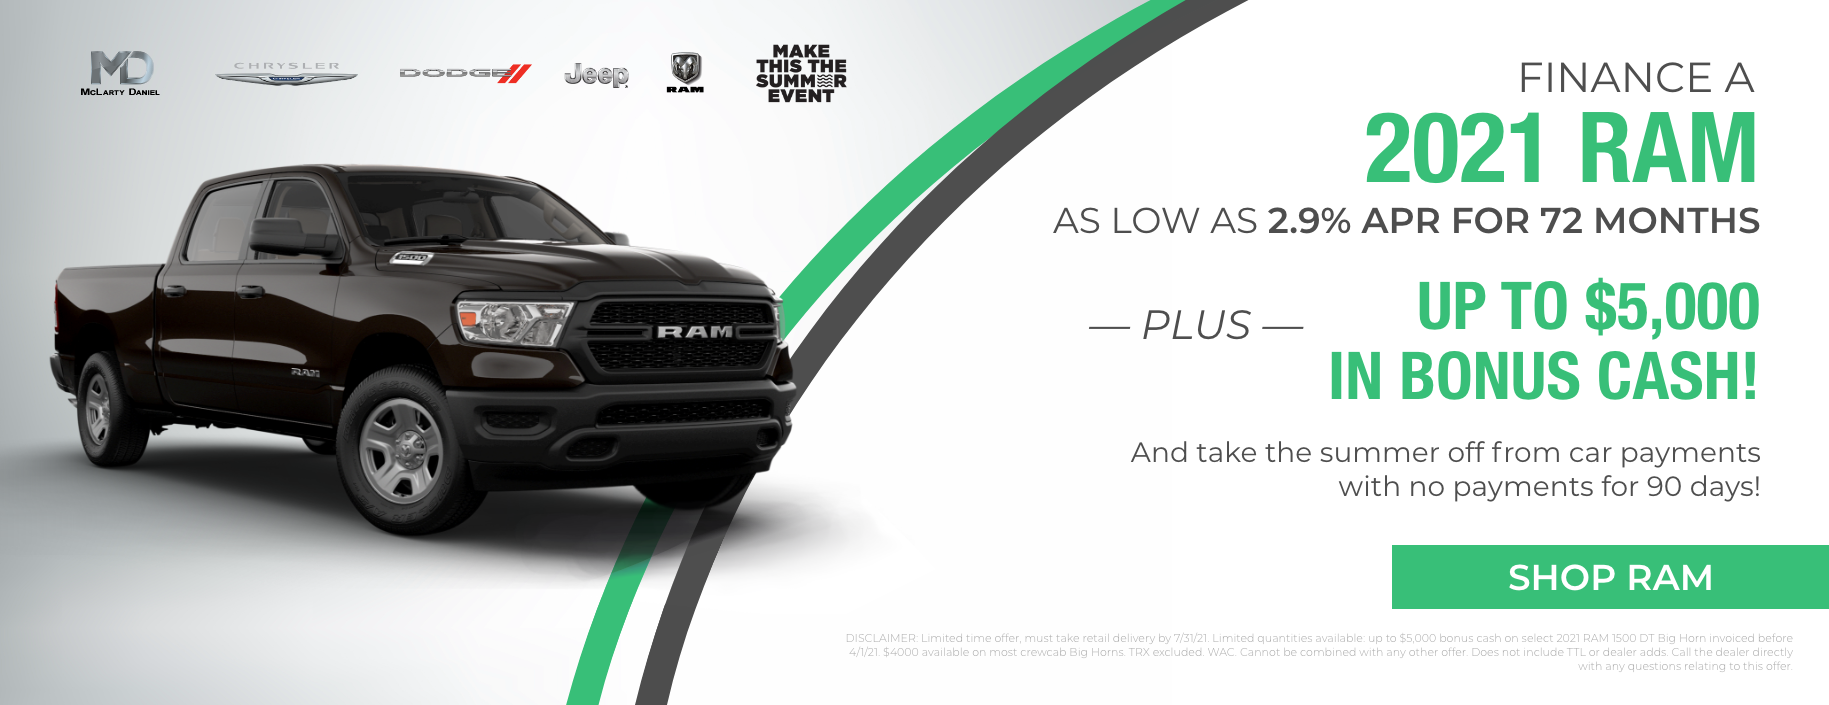 Finance a 2021 RAM as low as 2.9% APR for 72 months plus up to $5,000 in bonus cash! And take the summer off from car payments with no payments for 90 days